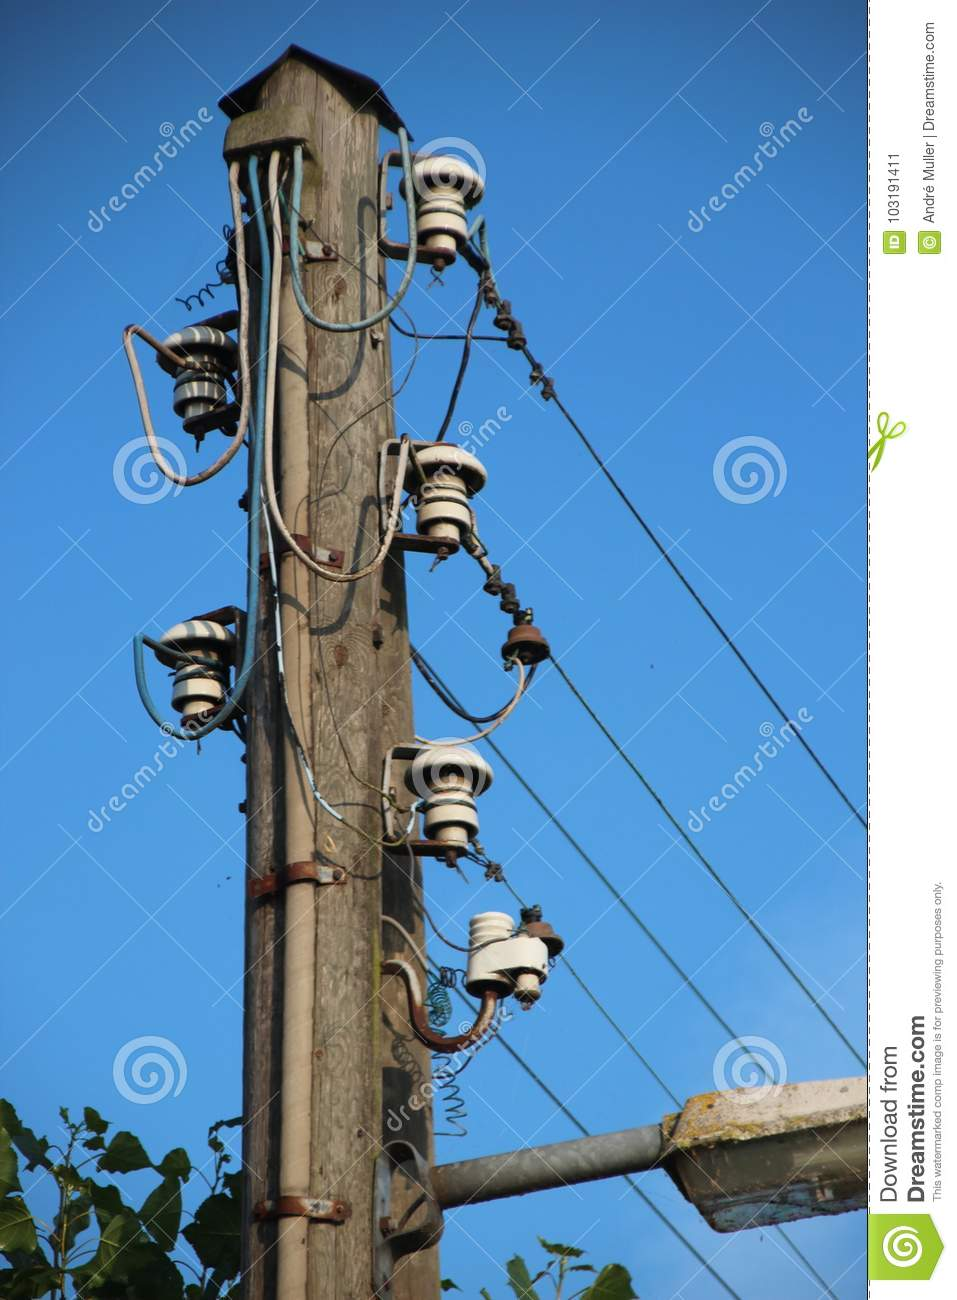 Electricity Wires | Ancient Electricity Wires On Wooden Pole In Moordrehct The